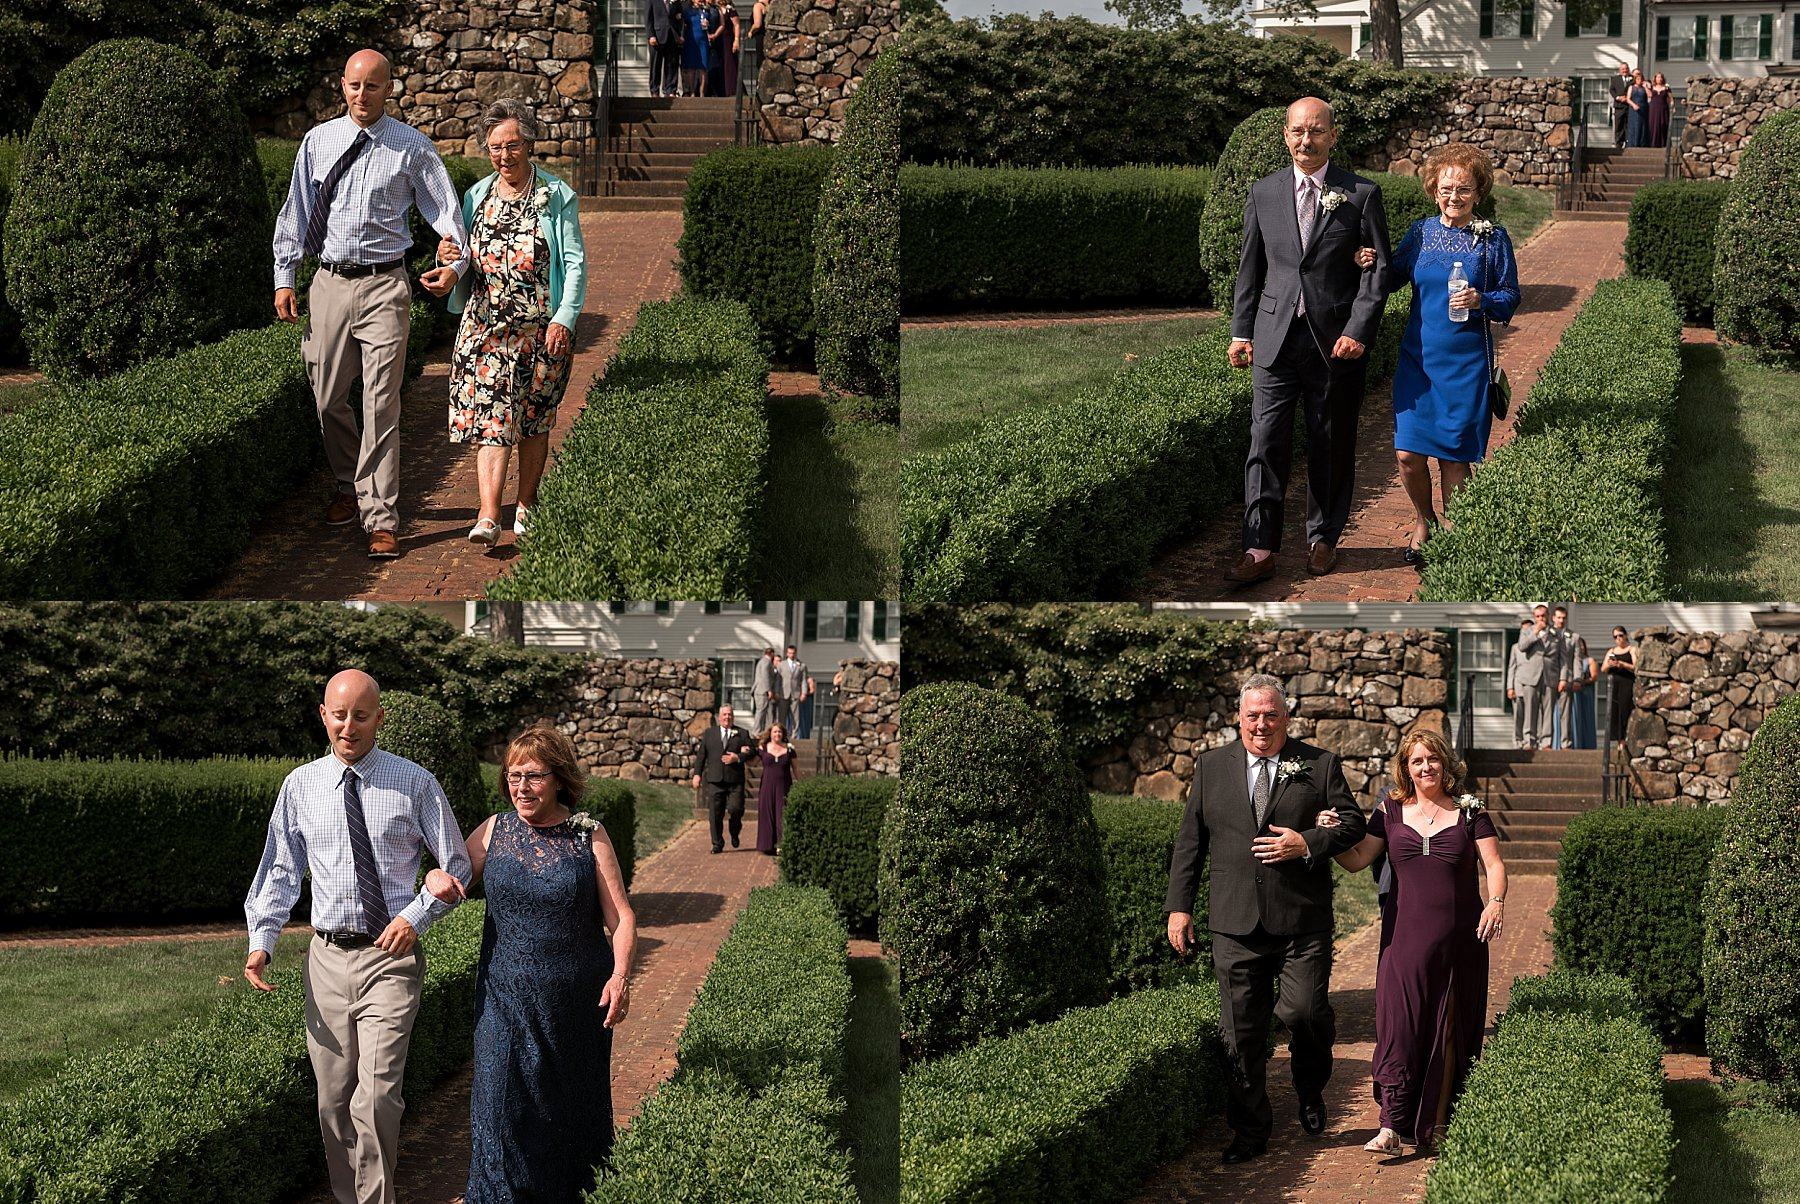 Wedding ceremony at the Hillstead Museum